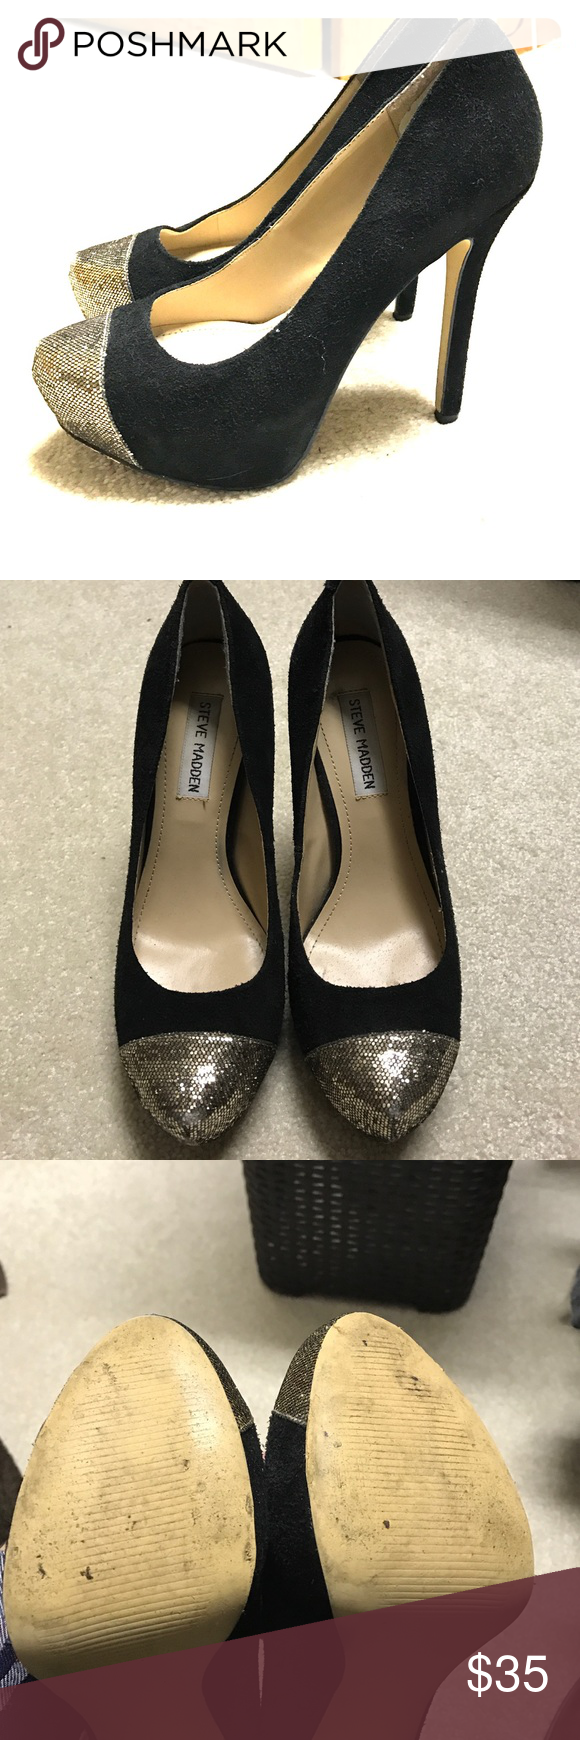 Steve Madden Pumps Worn a couple times. Black suede pumps. Gold glitter on the toe Steve Madden Shoes Heels